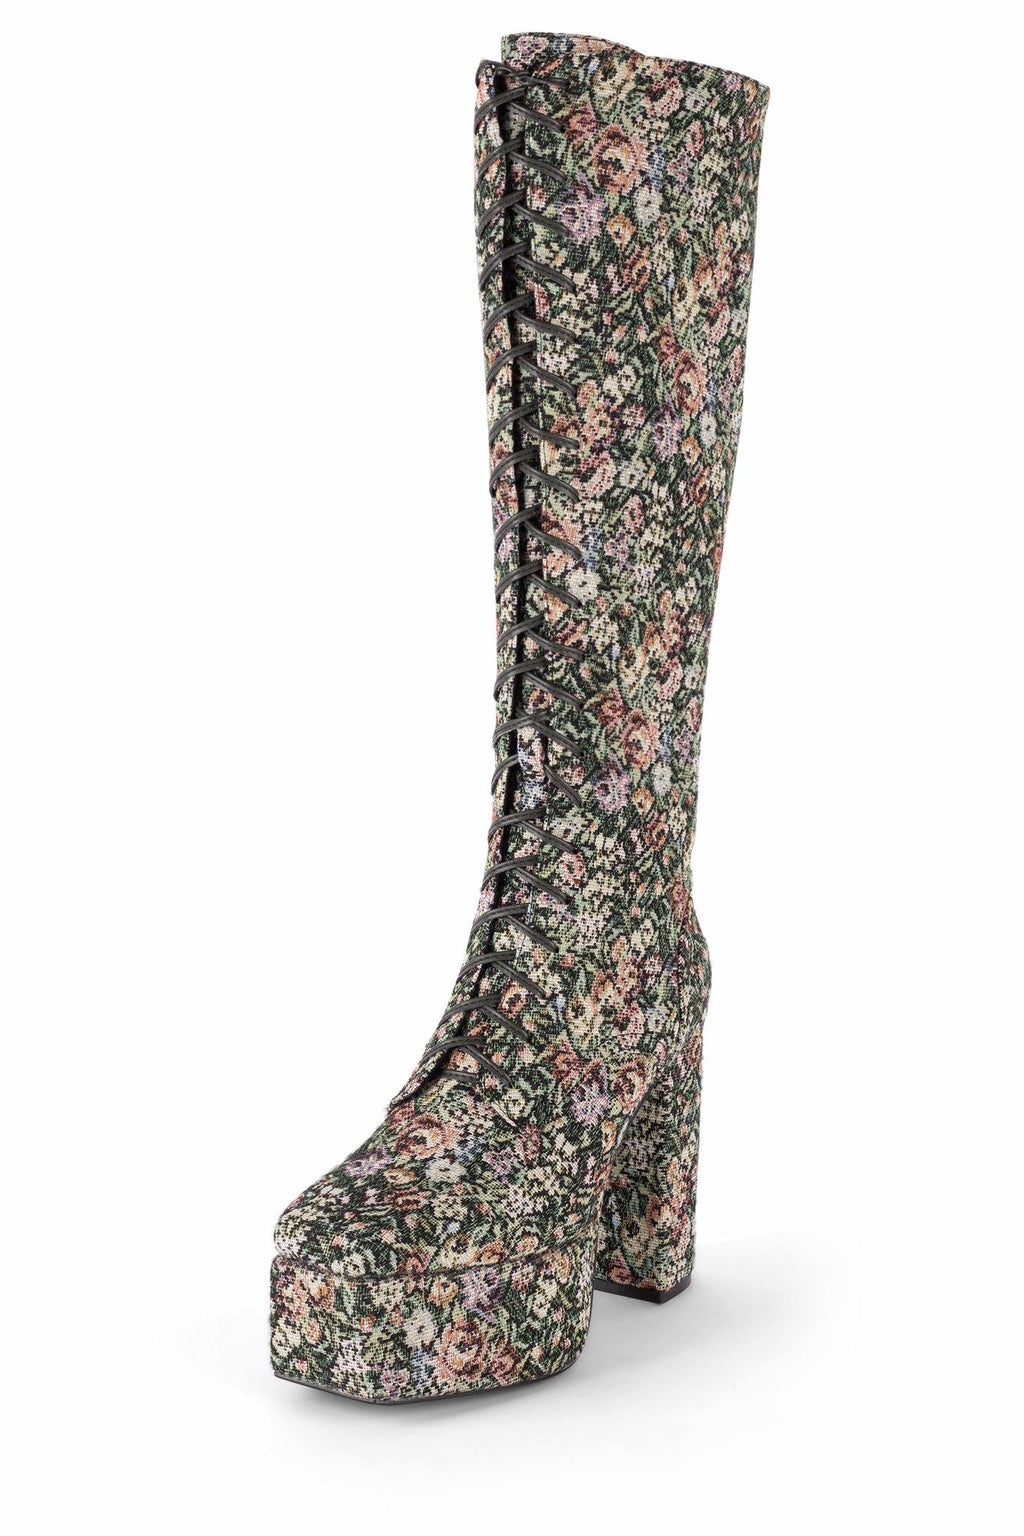 CLOVED-LU Knee-High Boot DV